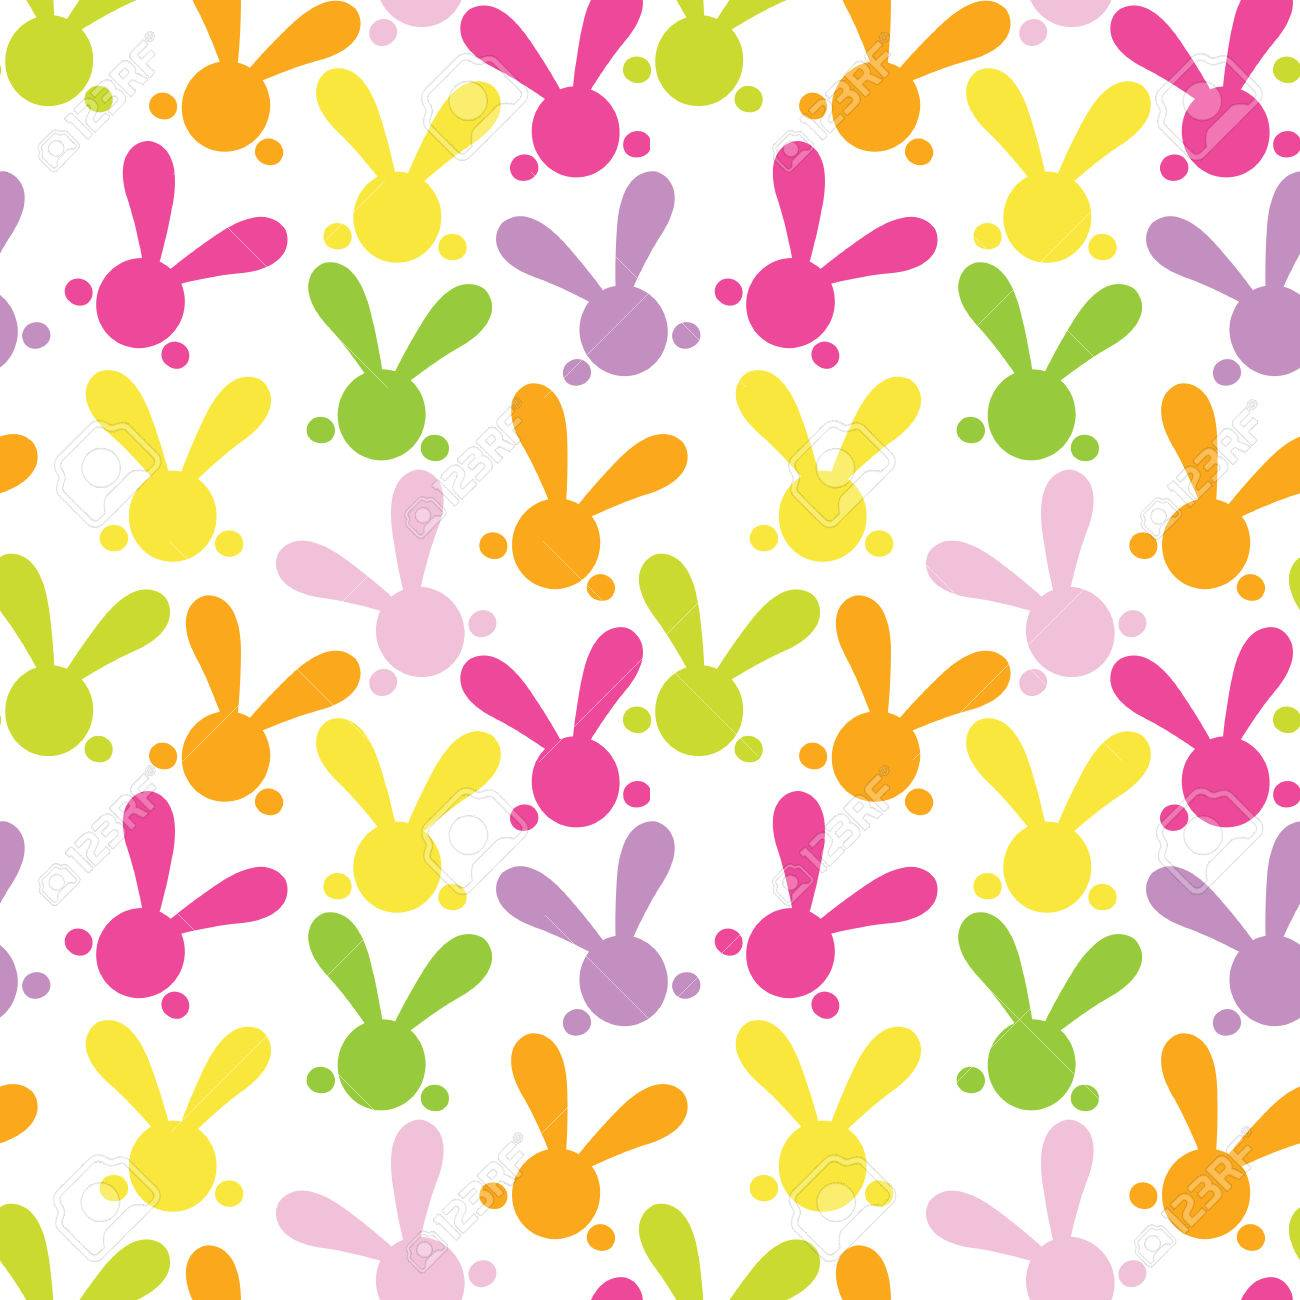 Colorful Seamless Paterns With Easter Bunny Vector Illustration